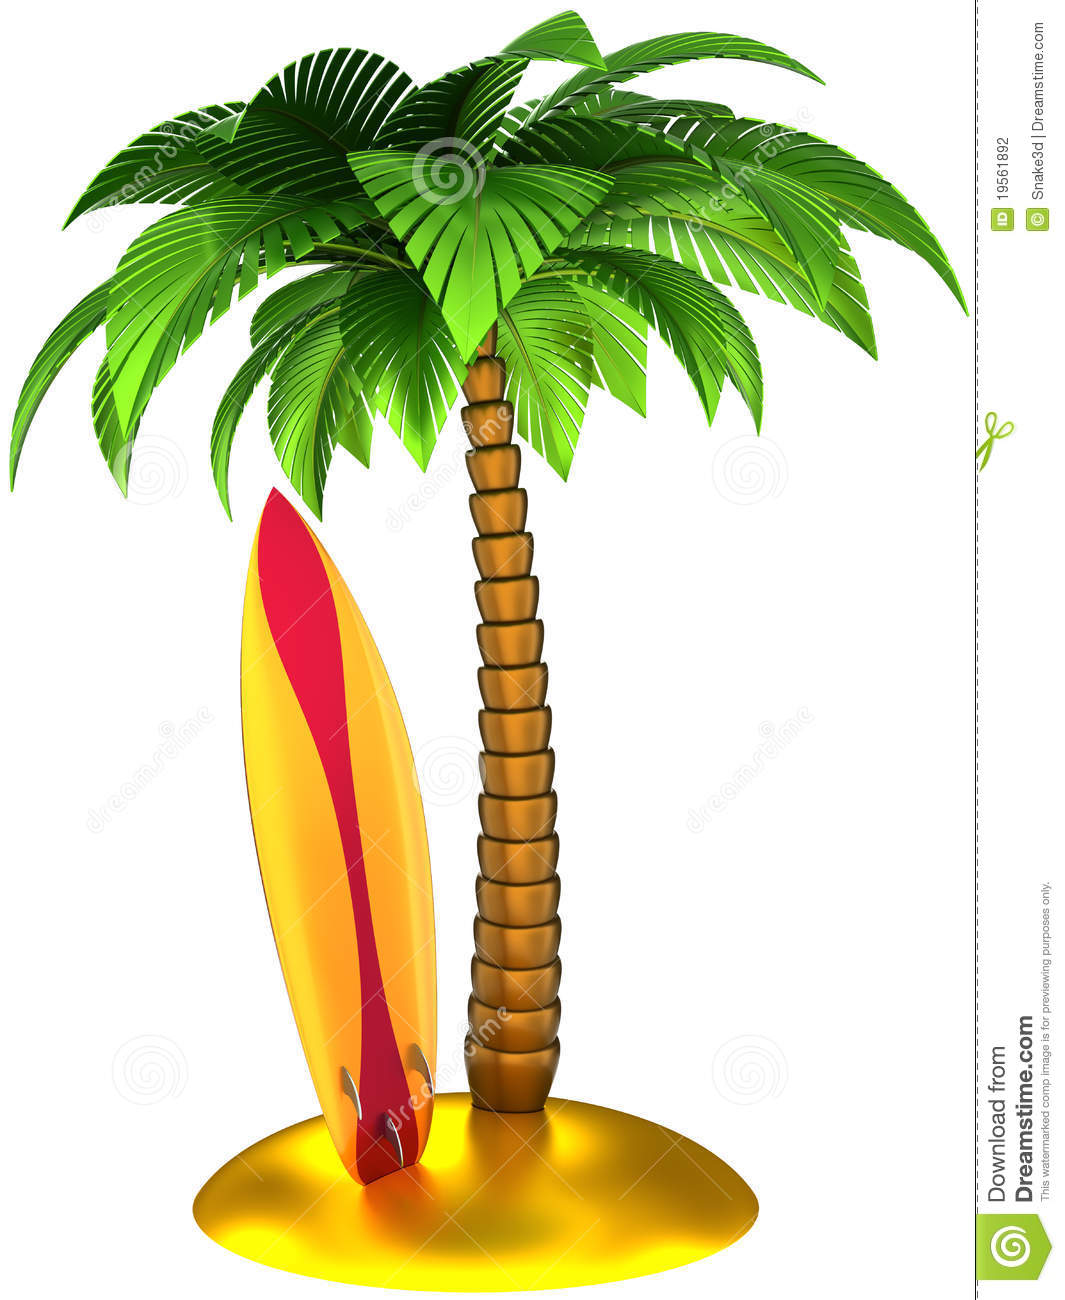 Surfboard palm tree clipart.